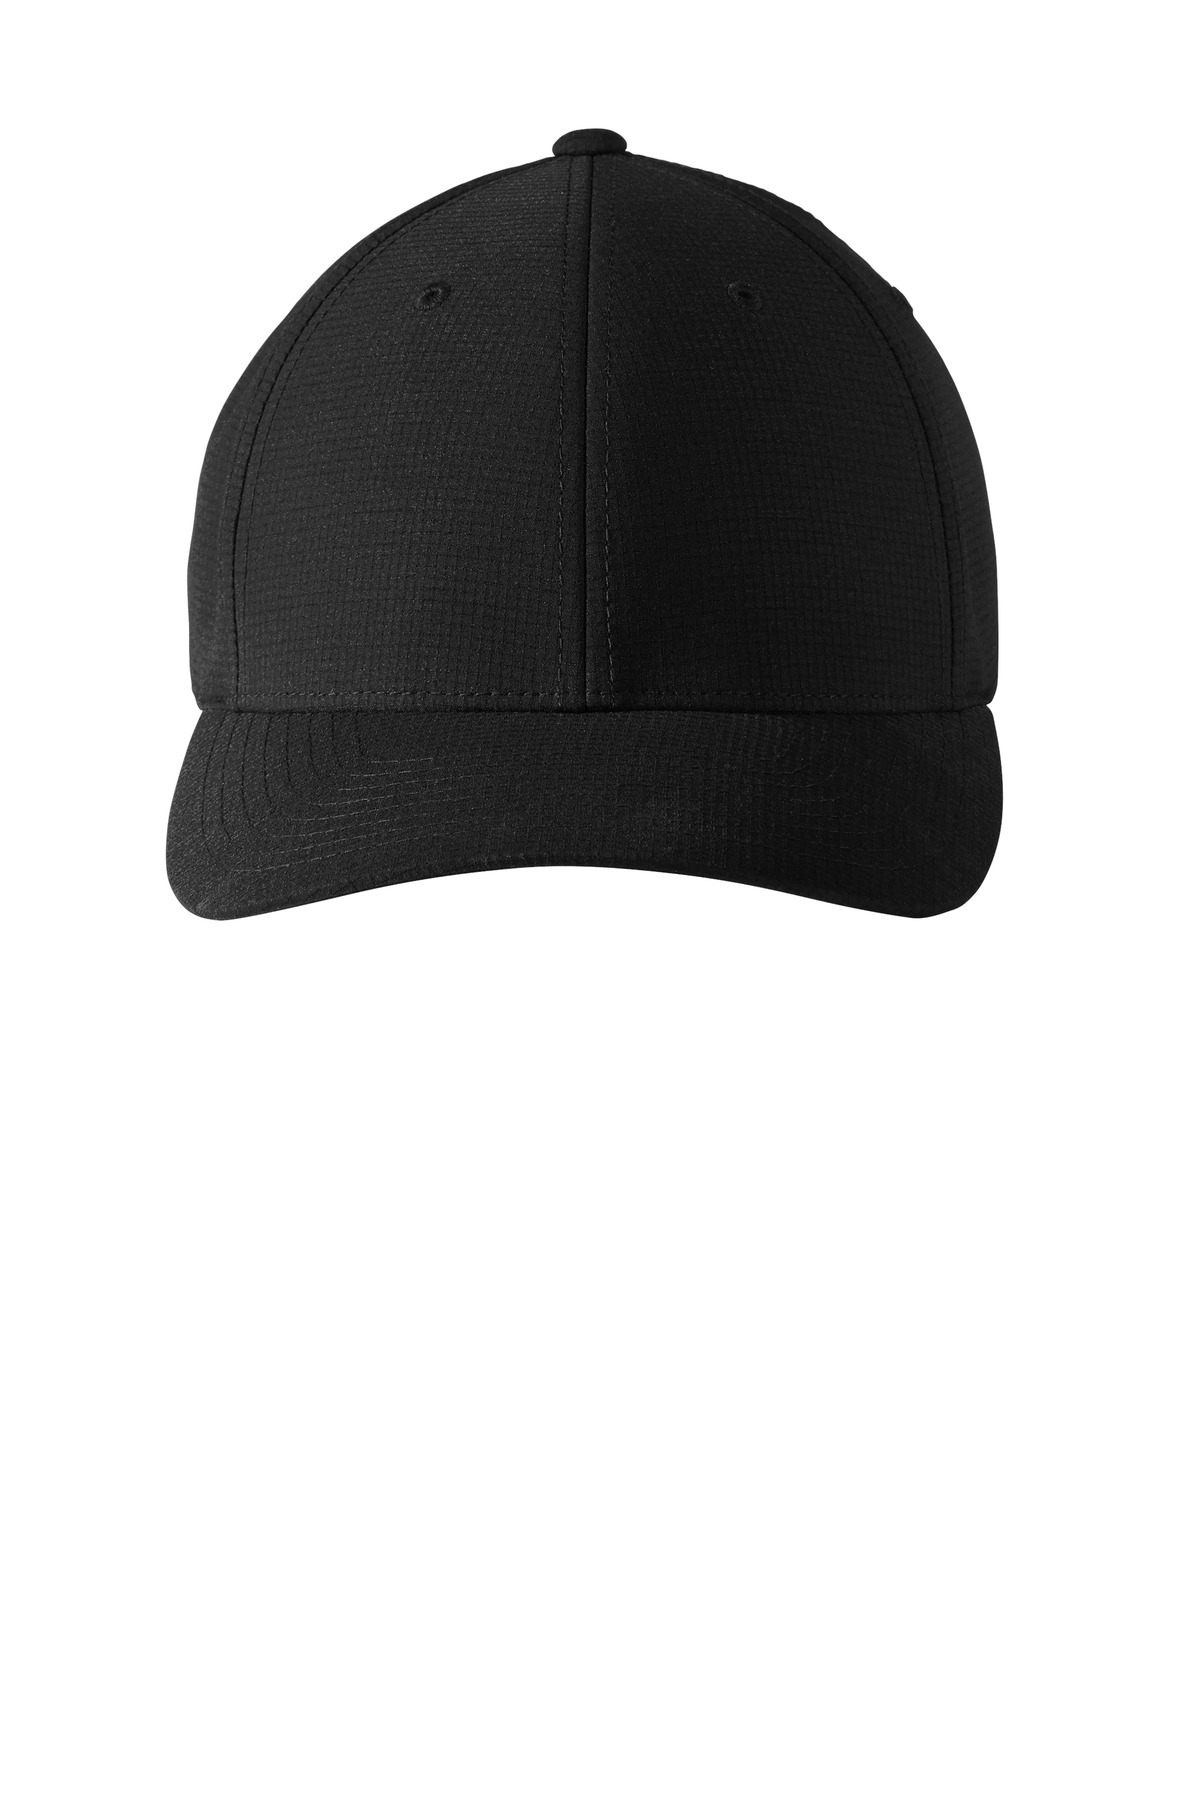 Port Authority  ®  Flexfit 110  ®  Performance Snapback Cap C301 - Black